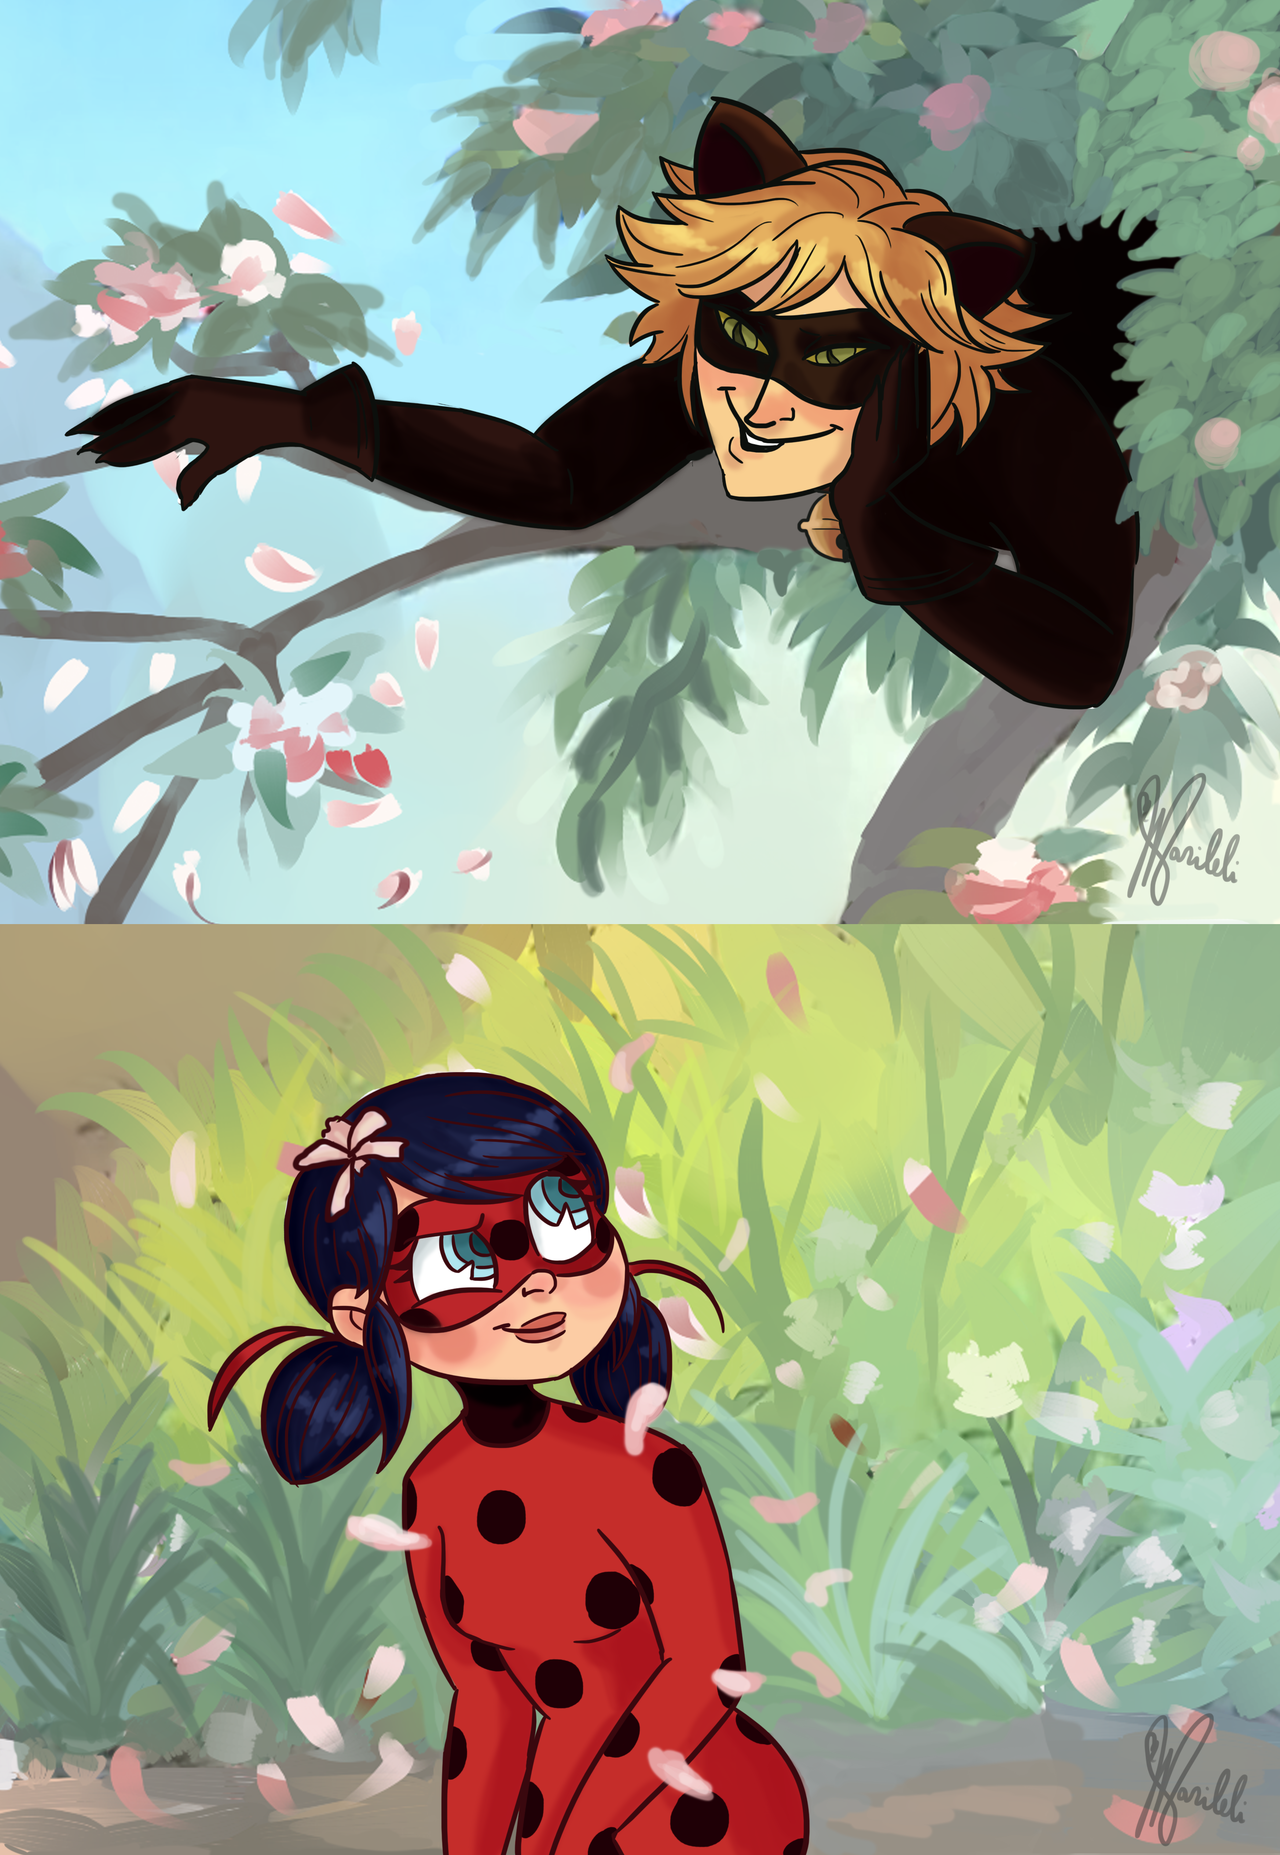 Marileli 50 Chat Noir The Alley Cat Ladybug Why Monsieur Your Name Seems To Cover Miraculous Ladybug Anime Miraculous Ladybug Miraculous Ladybug Memes